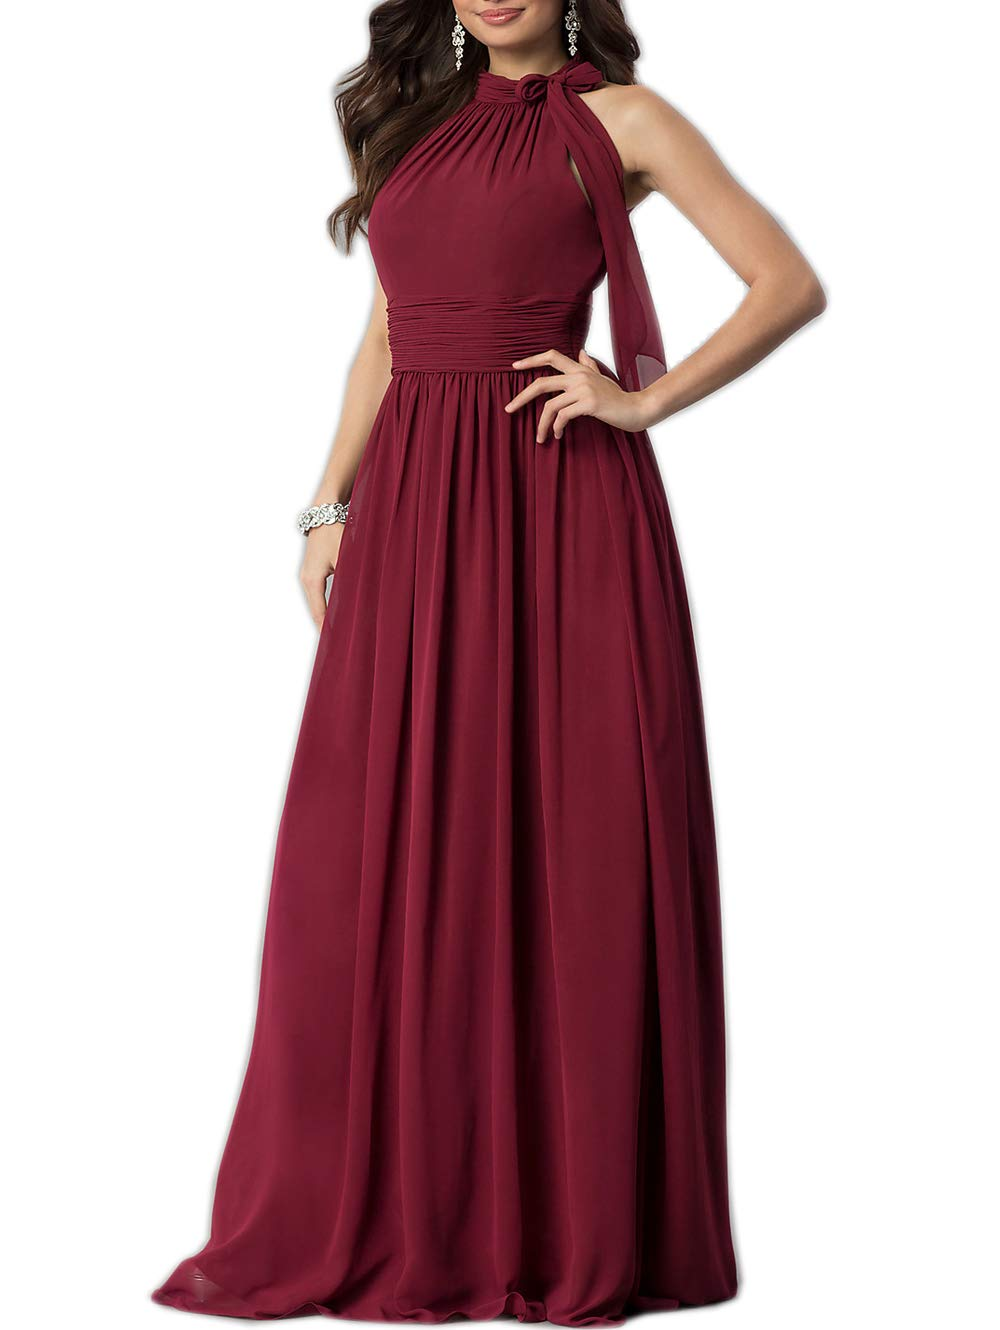 Roiii Women Cleb Prom Formal Casual Party Cocktail Wedding Evening Sleeveless High Waist Chiffon Plus Size Dress (Small, Wine Red)